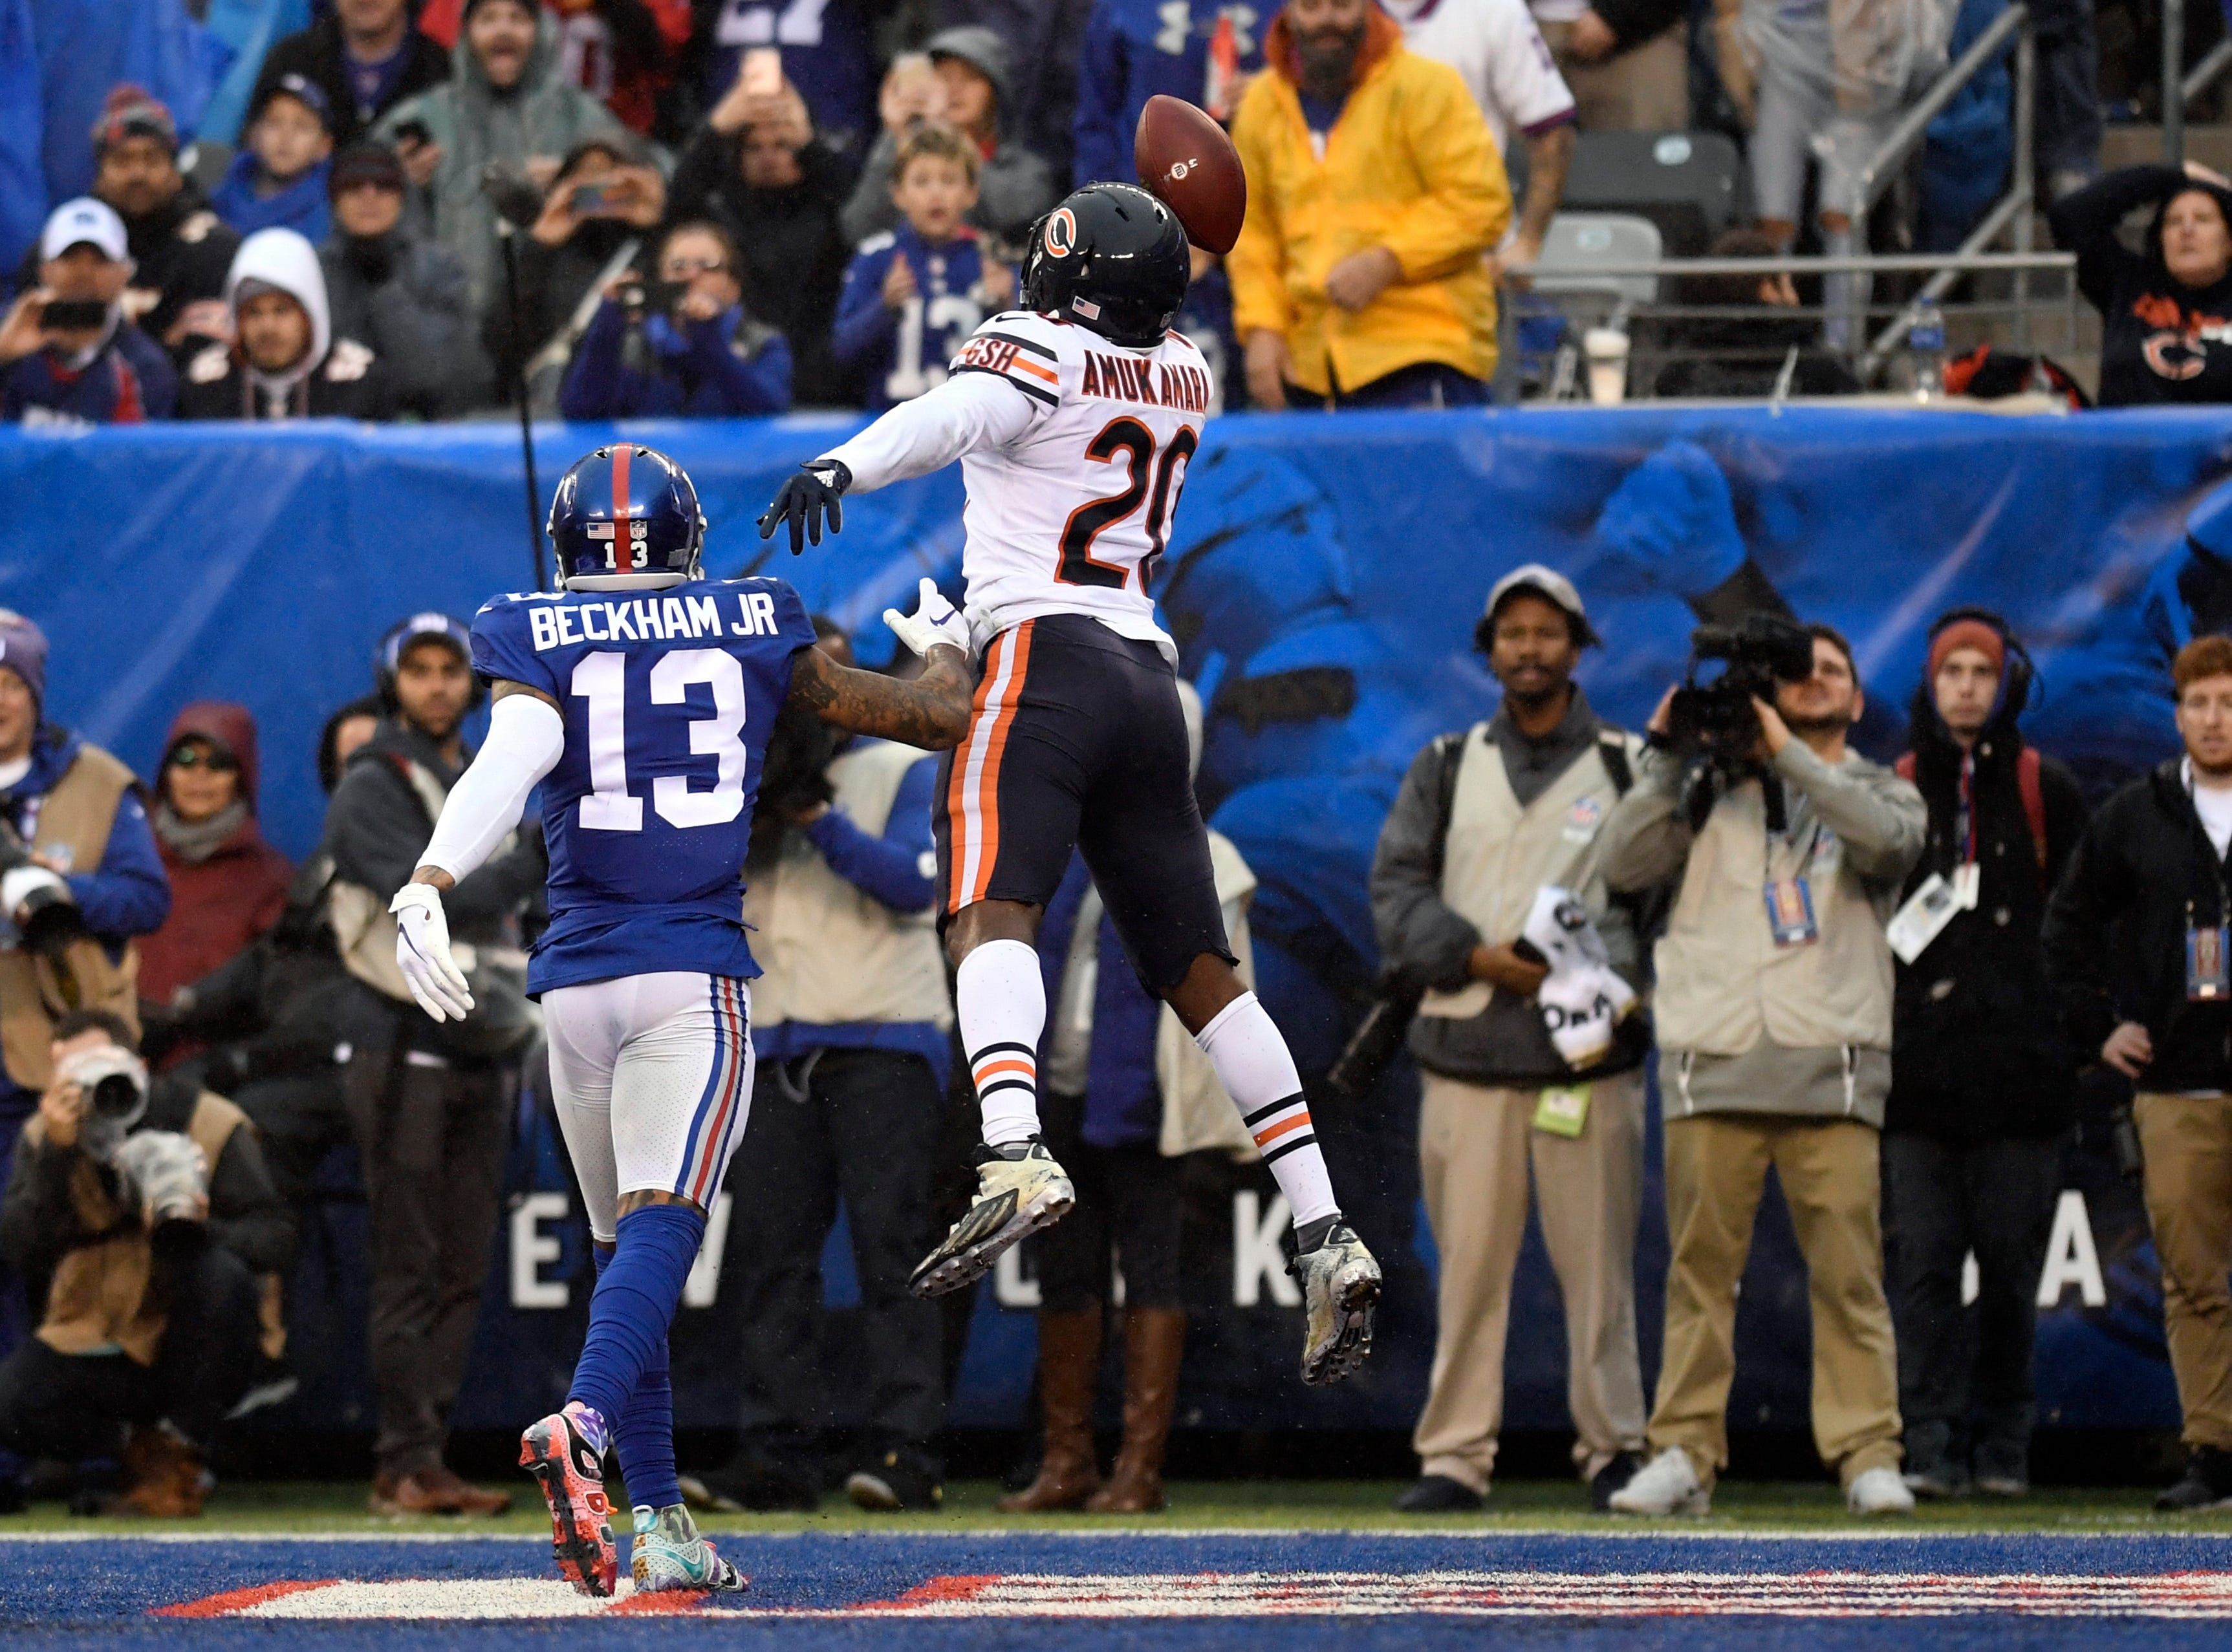 Chicago Bears cornerback Prince Amukamara (20) nearly picks off a touchdown pass intended for New York Giants wide receiver Odell Beckham Jr. (13) in the second half. The New York Giants defeat the Chicago Bears in overtime 30-27 on Sunday, Dec. 2, 2018, in East Rutherford.